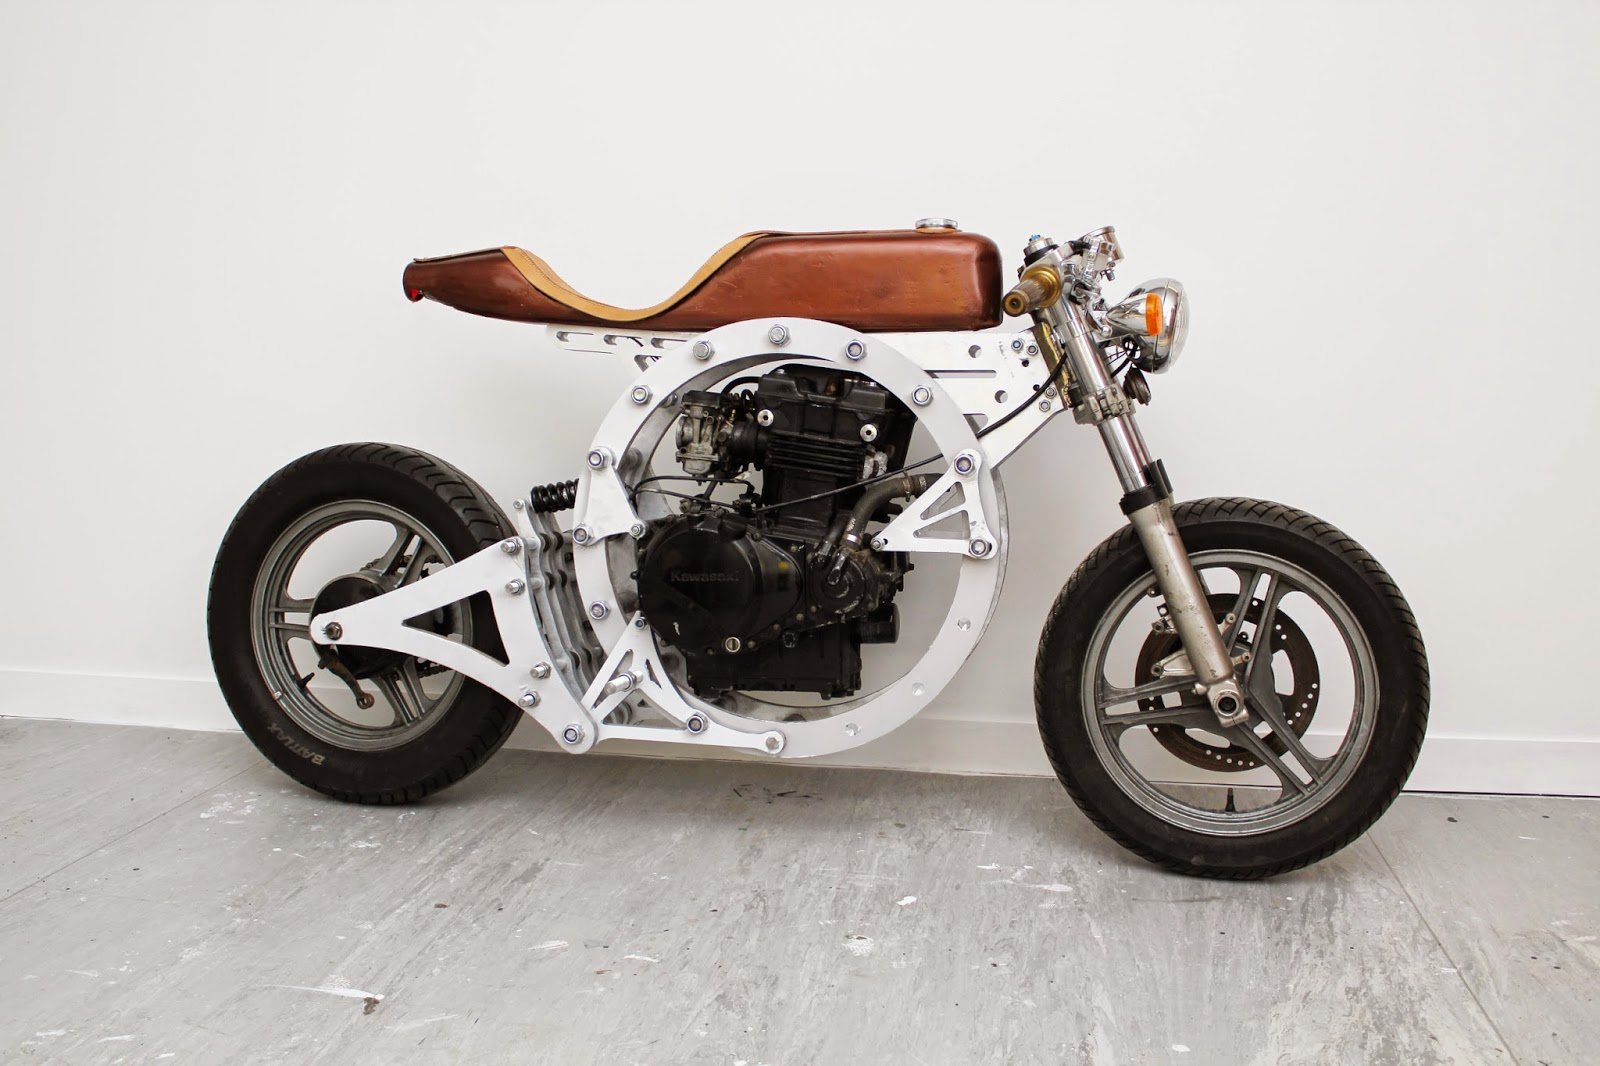 tinker open source cafe racer rocketgarage cafe racer magazine. Black Bedroom Furniture Sets. Home Design Ideas